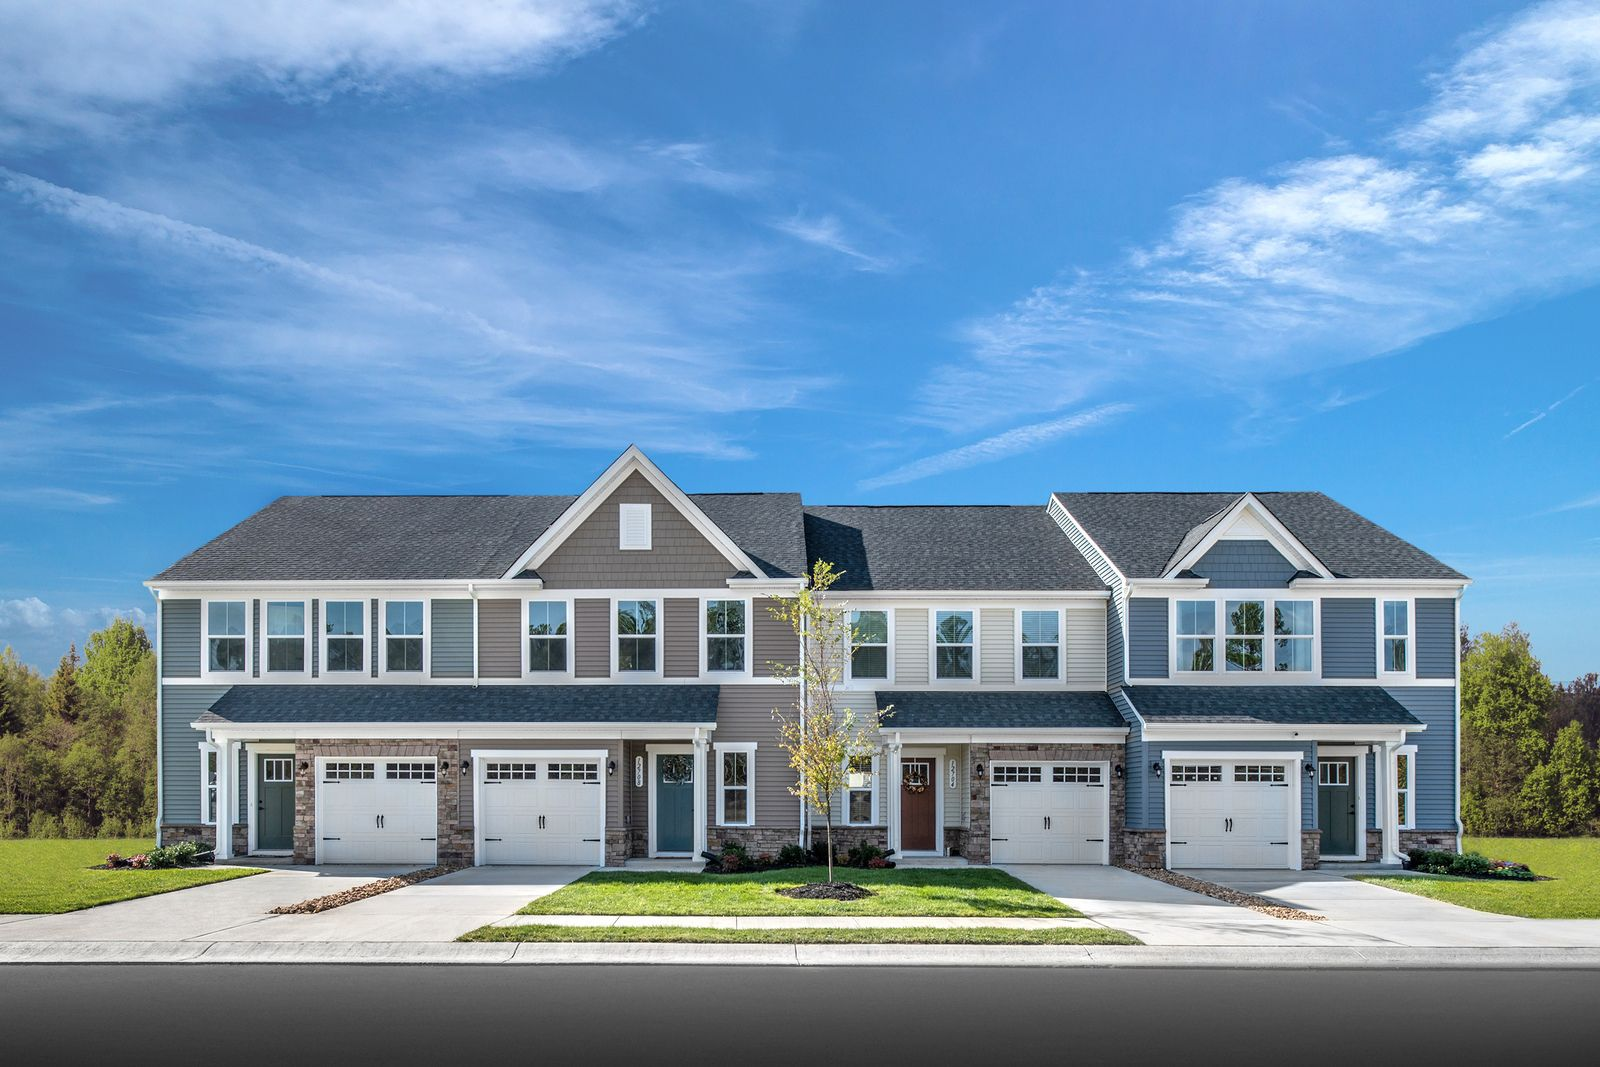 BURGESSES QUARTERS TOWNHOMES – SELLING FAST:The most affordable new maintenance-free garage townhomes in York County starting from the upper $200s. 0% Financing available! Located only 1 mile to Colonial Williamsburg.Schedule your visit today!